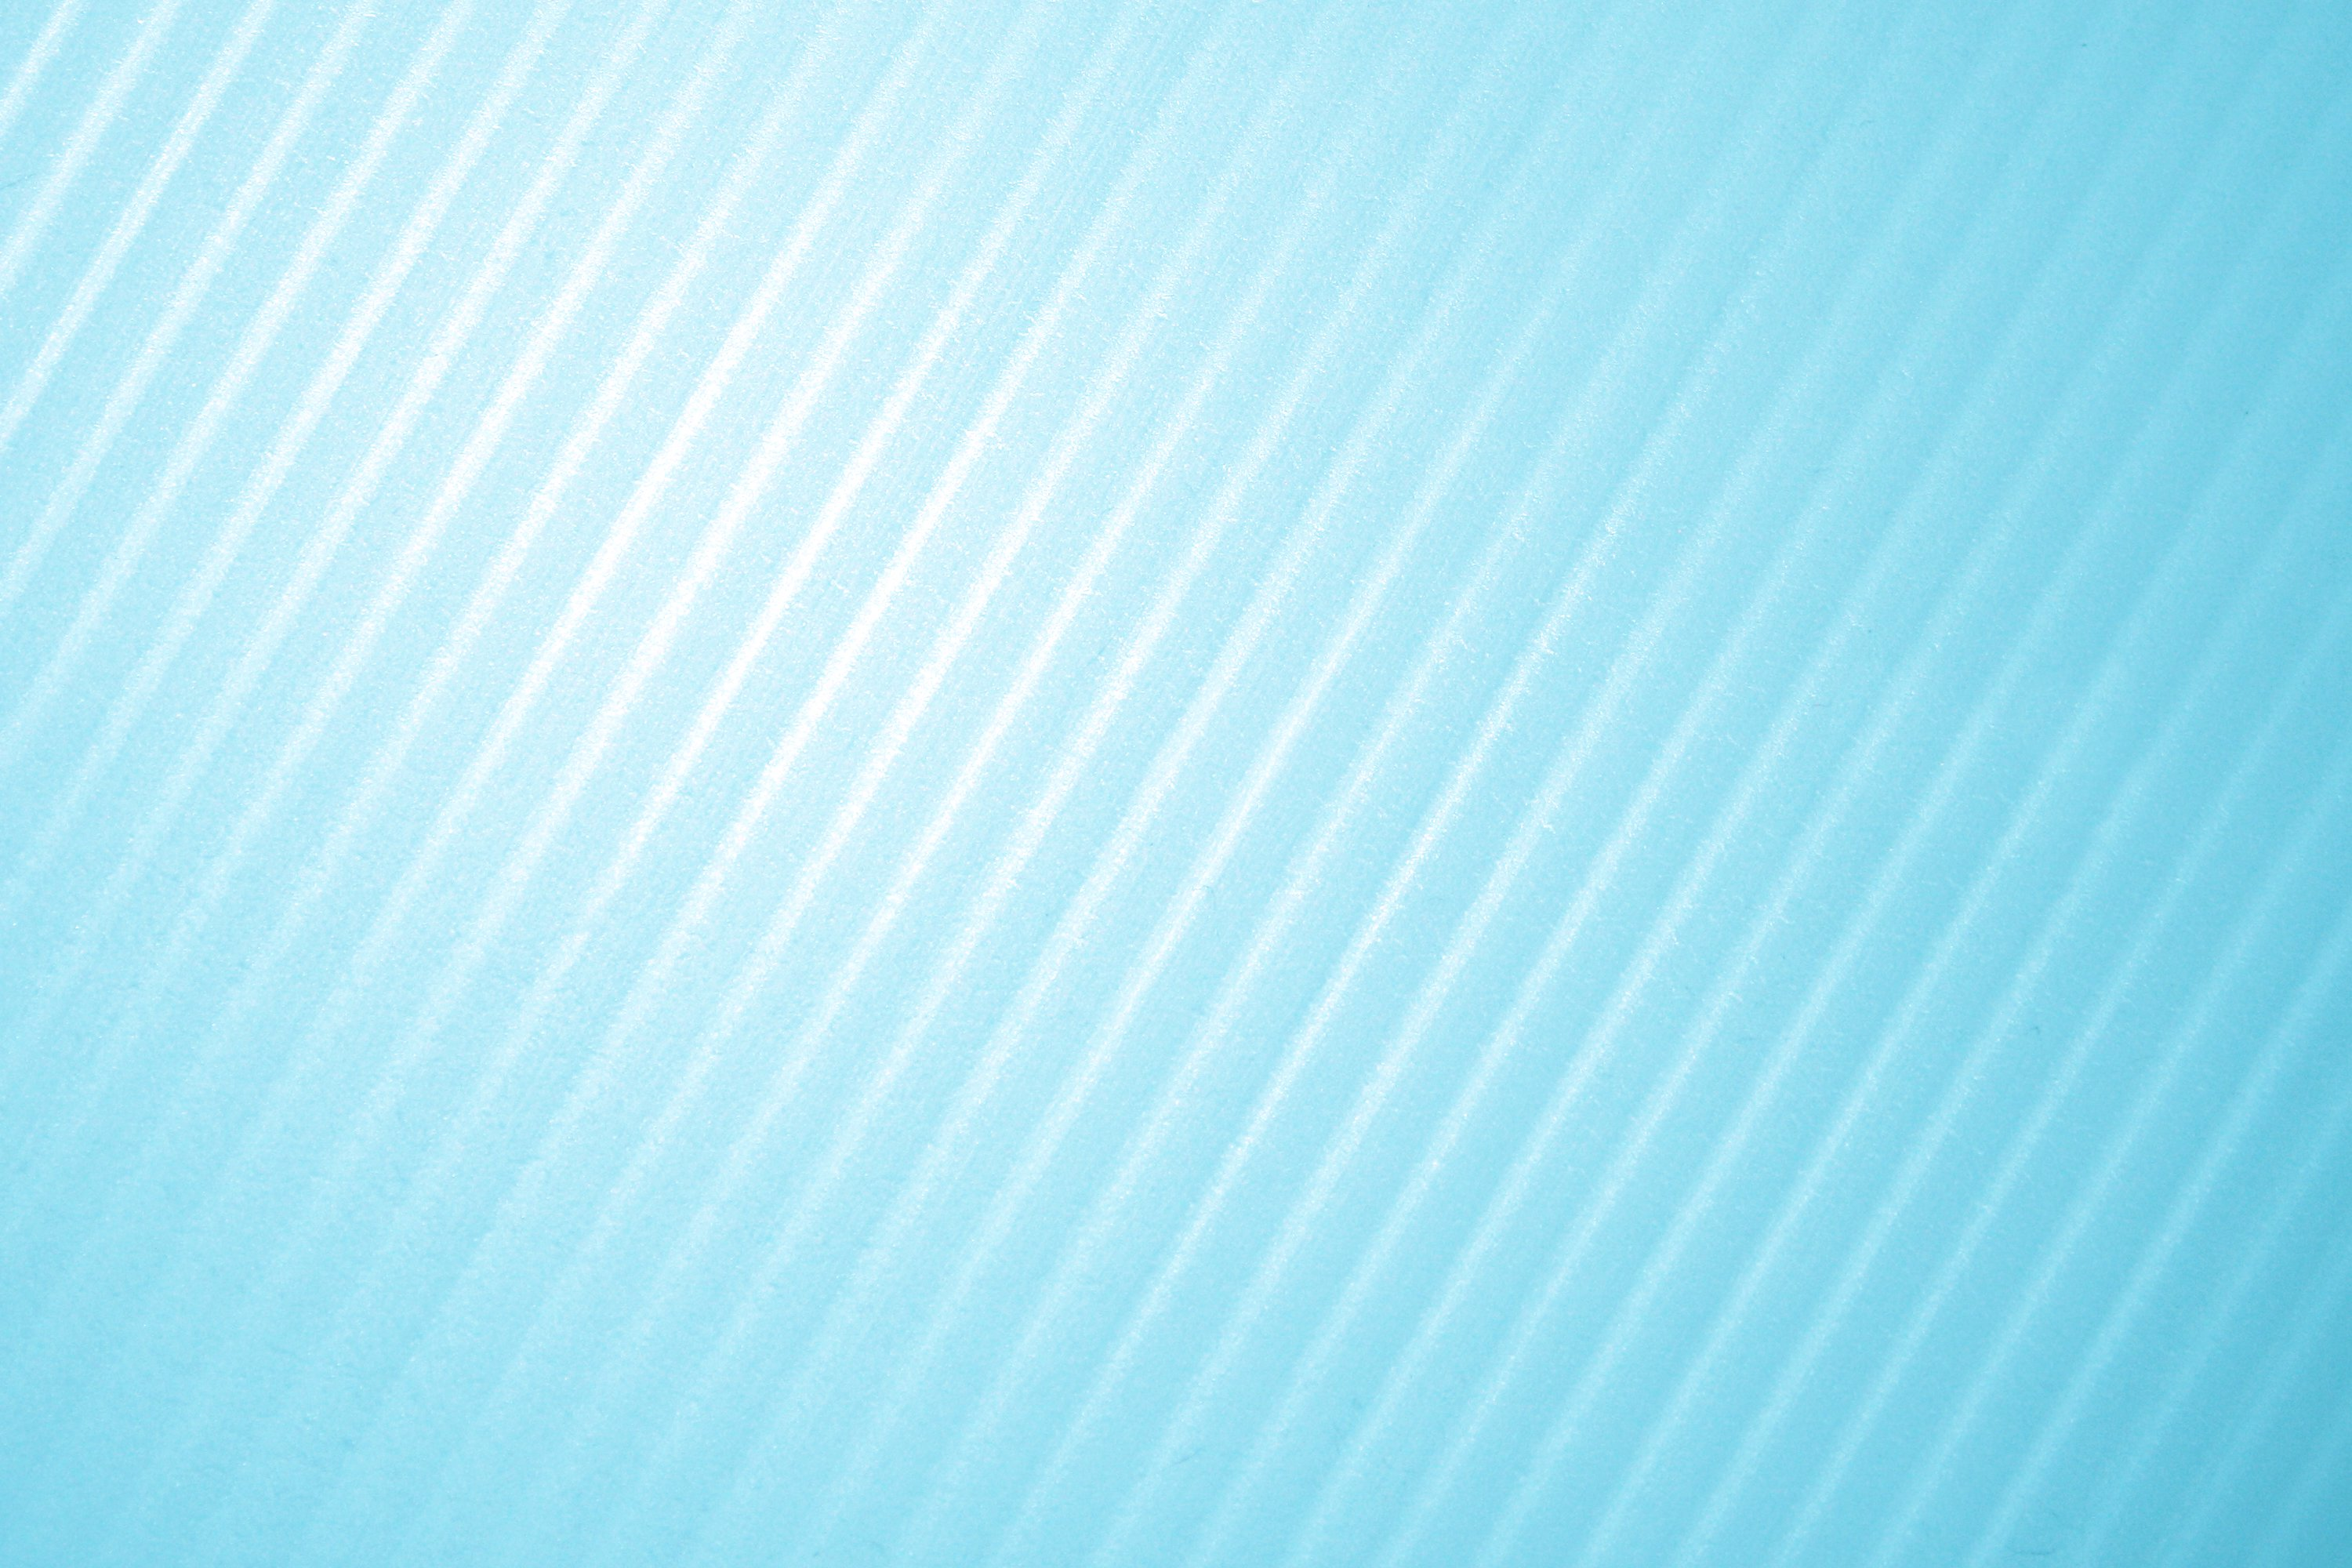 Light Blue Textured Backgrounds